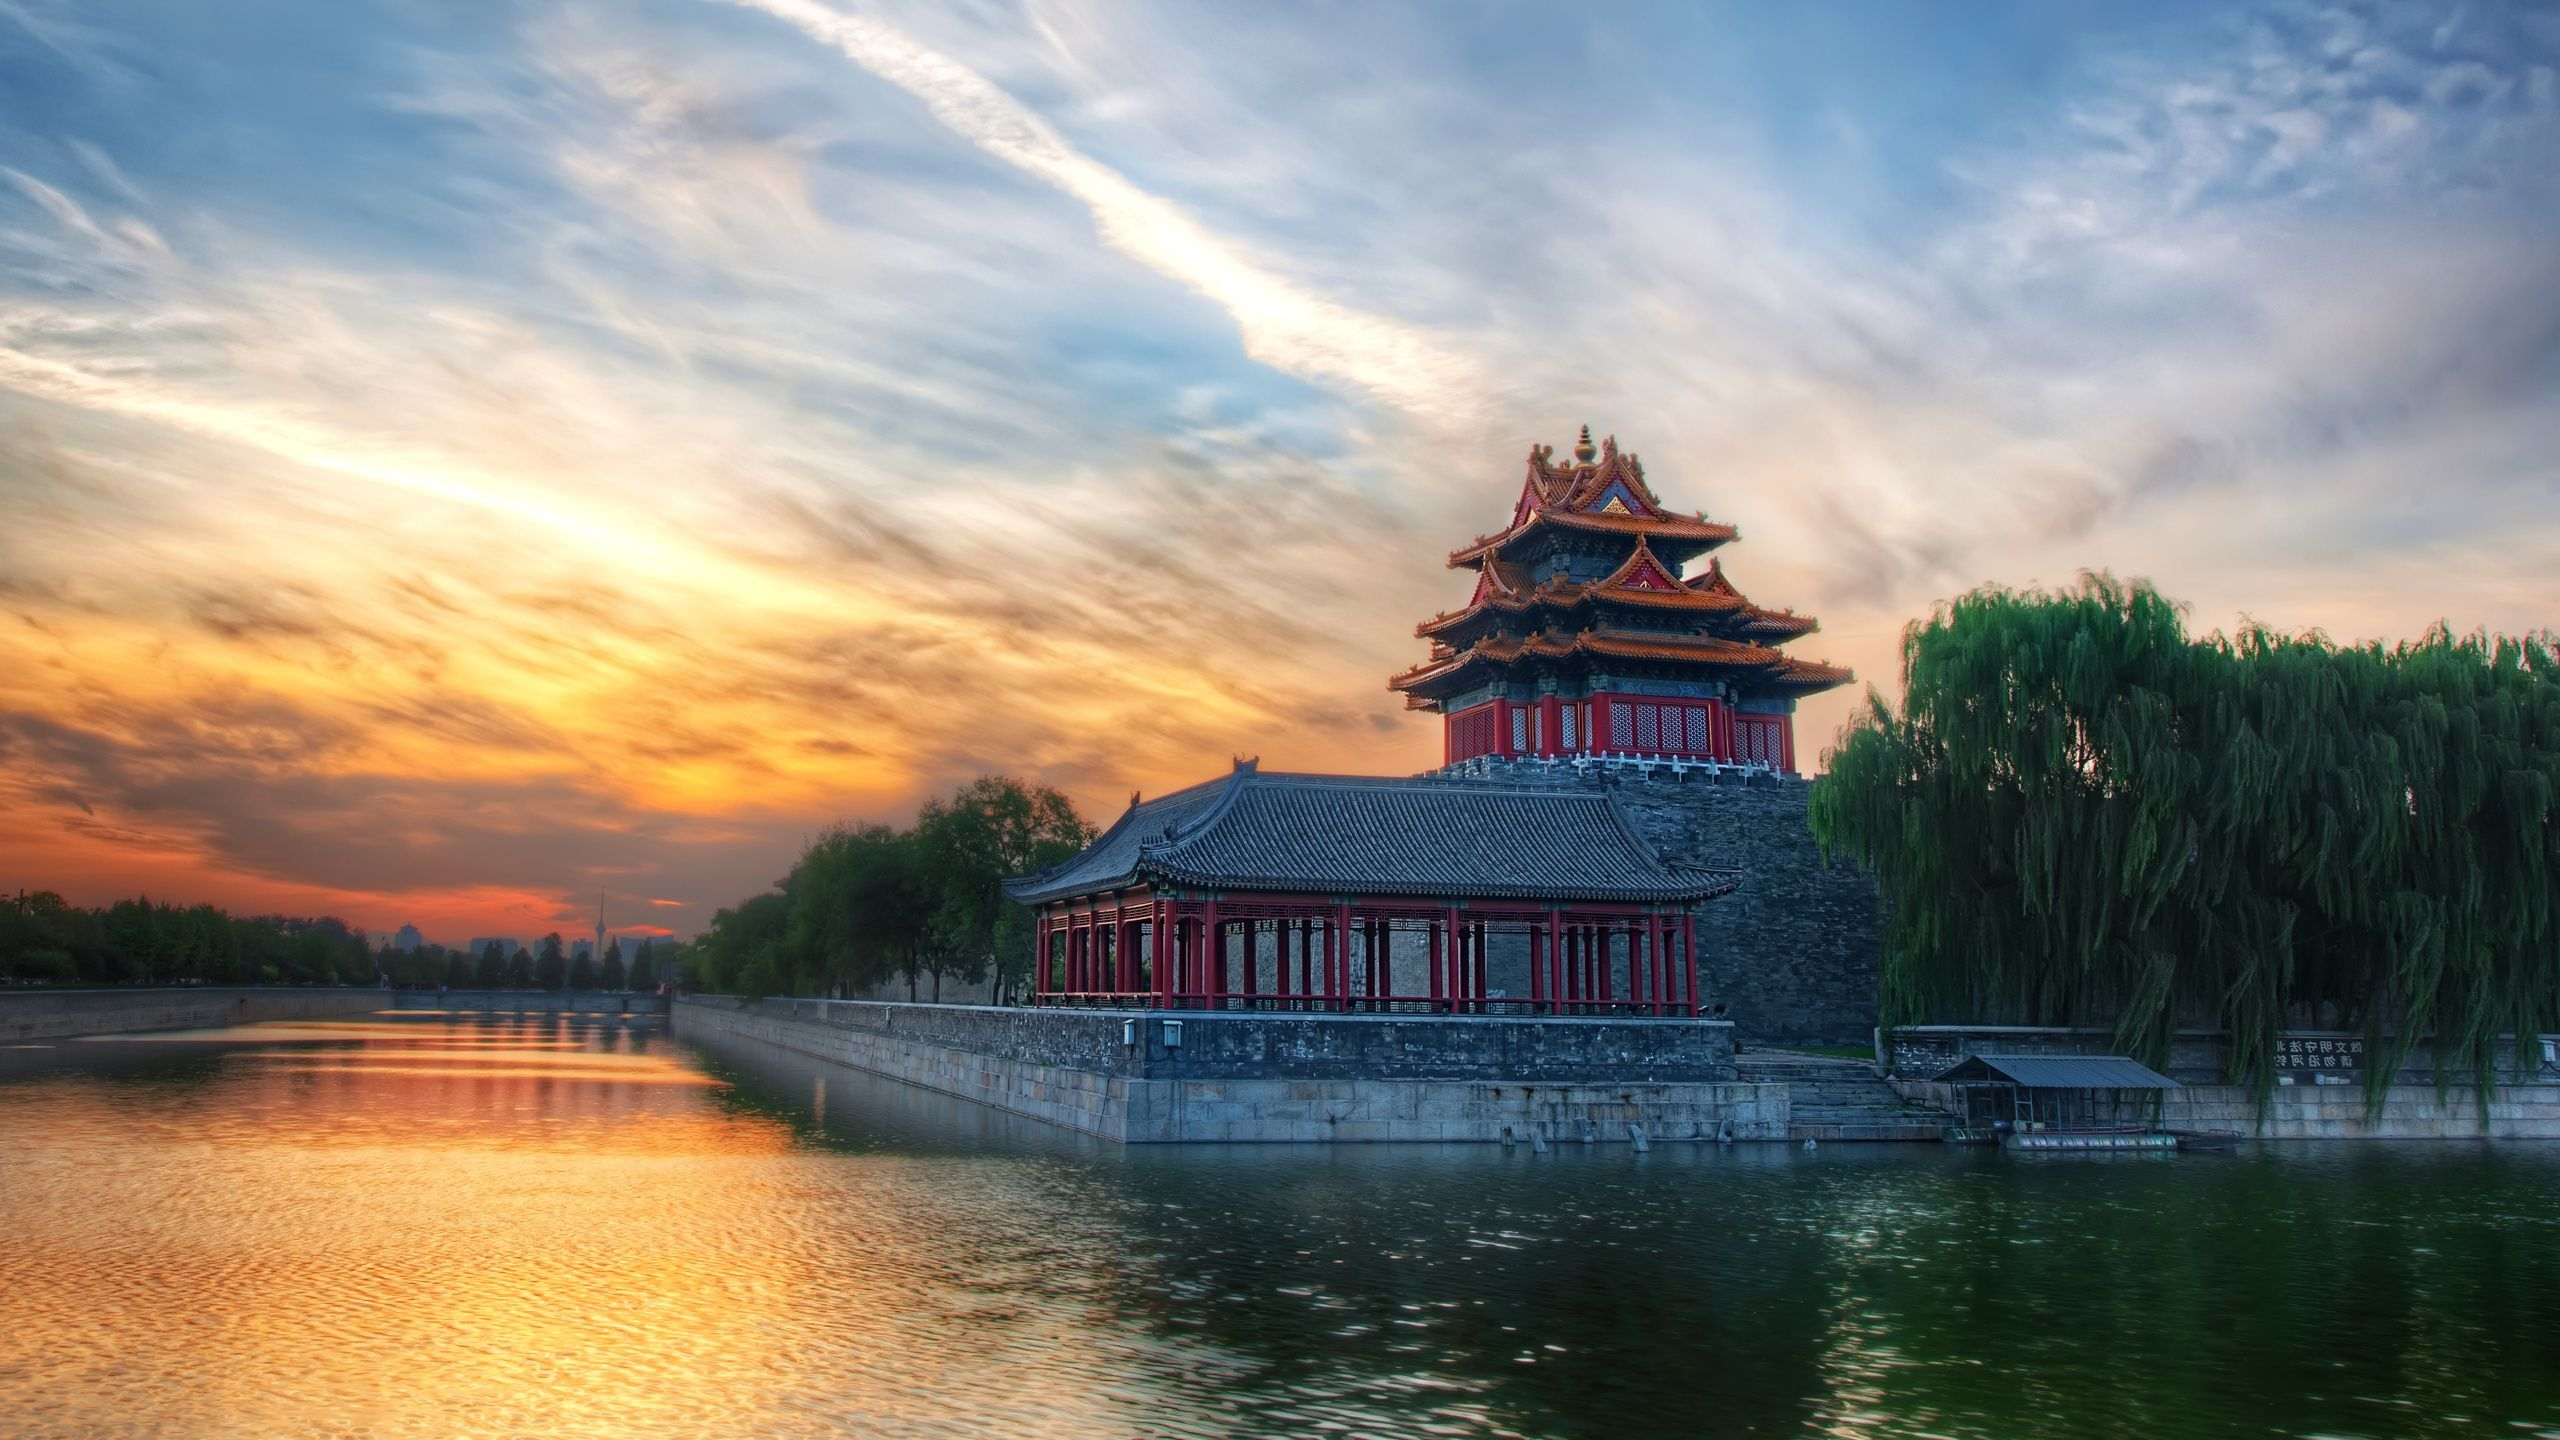 77 Forbidden City Wallpaper On Wallpapersafari